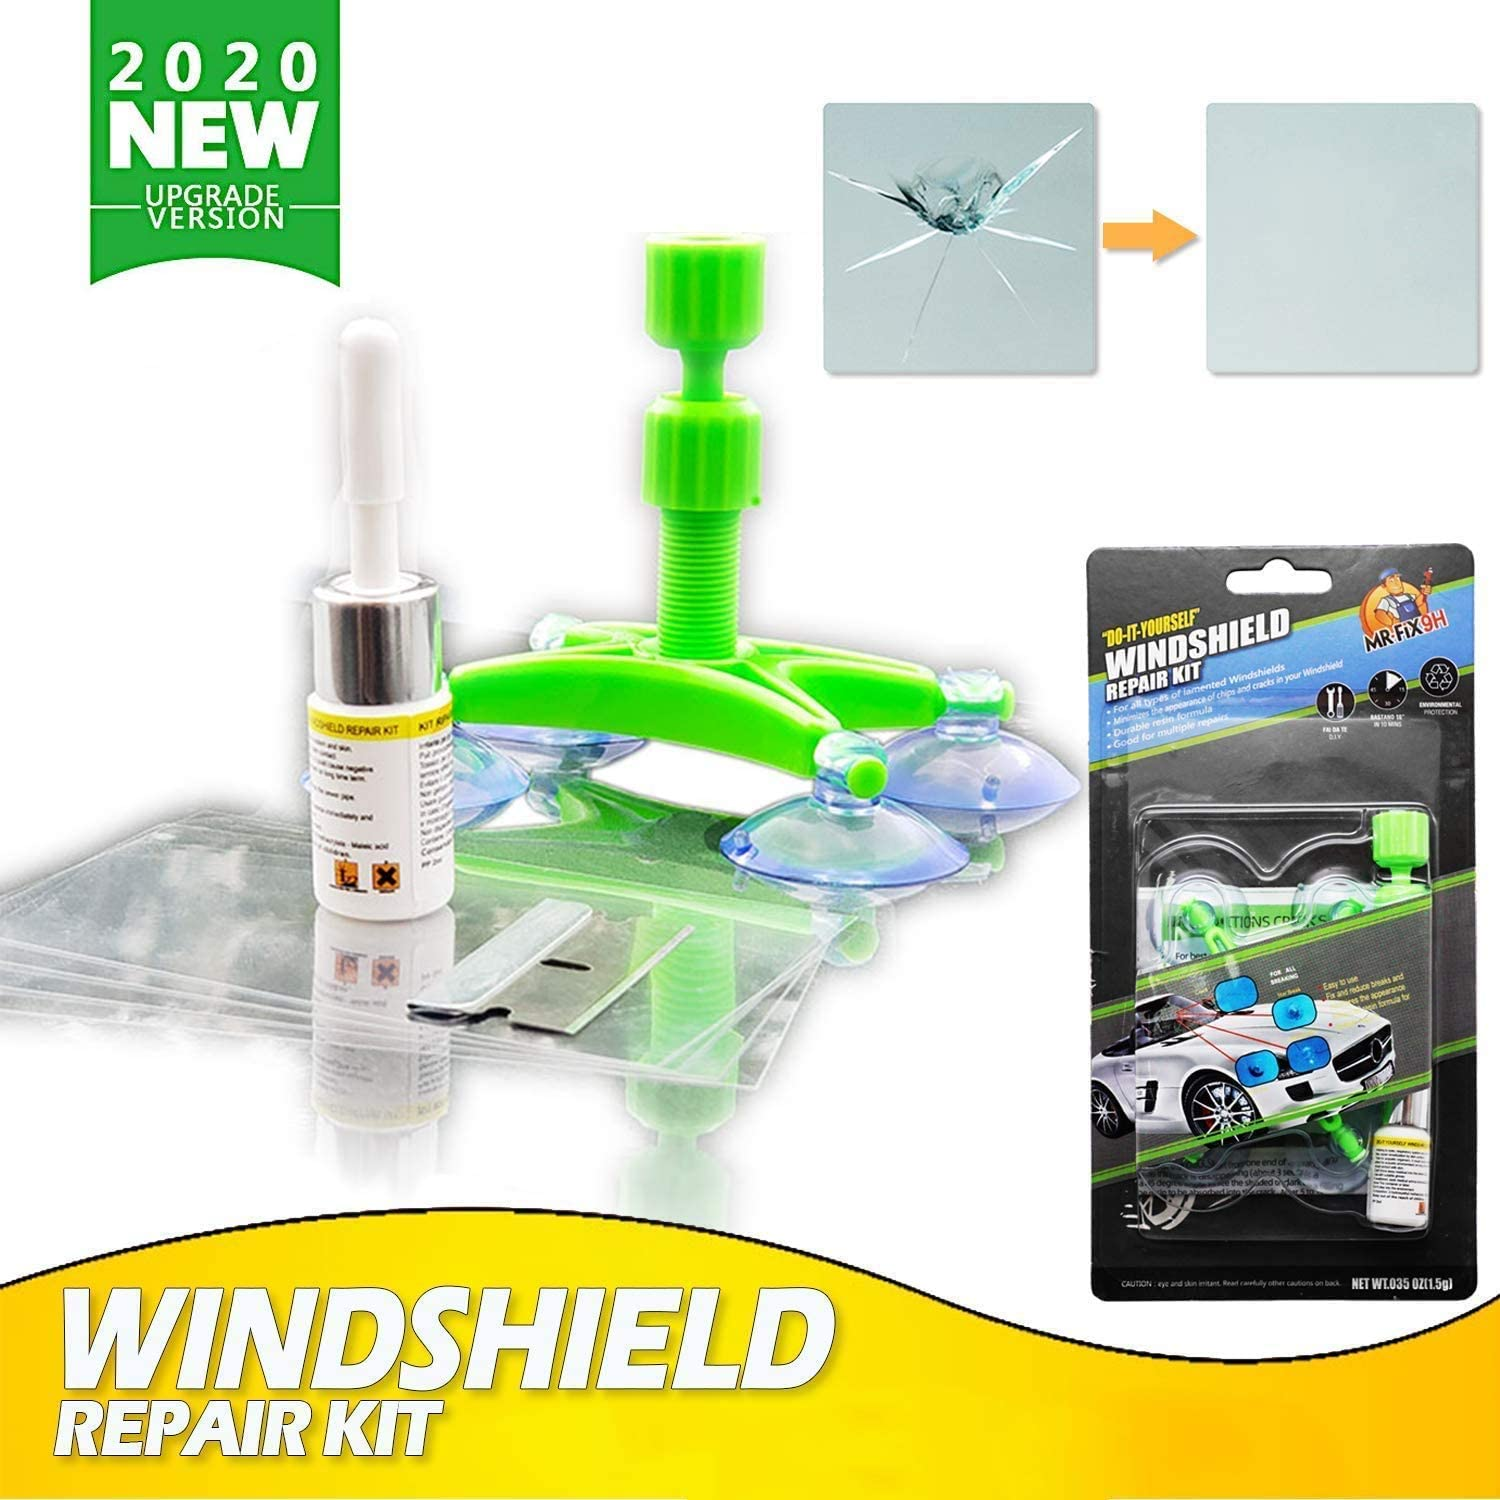 Windshield Repair Tool Car Windscreen Repair Kit With Windshield Repair Resin For Car Glass Windscreen Crack Chips Scratches Cracks Bull S Eyes And Stars Auto